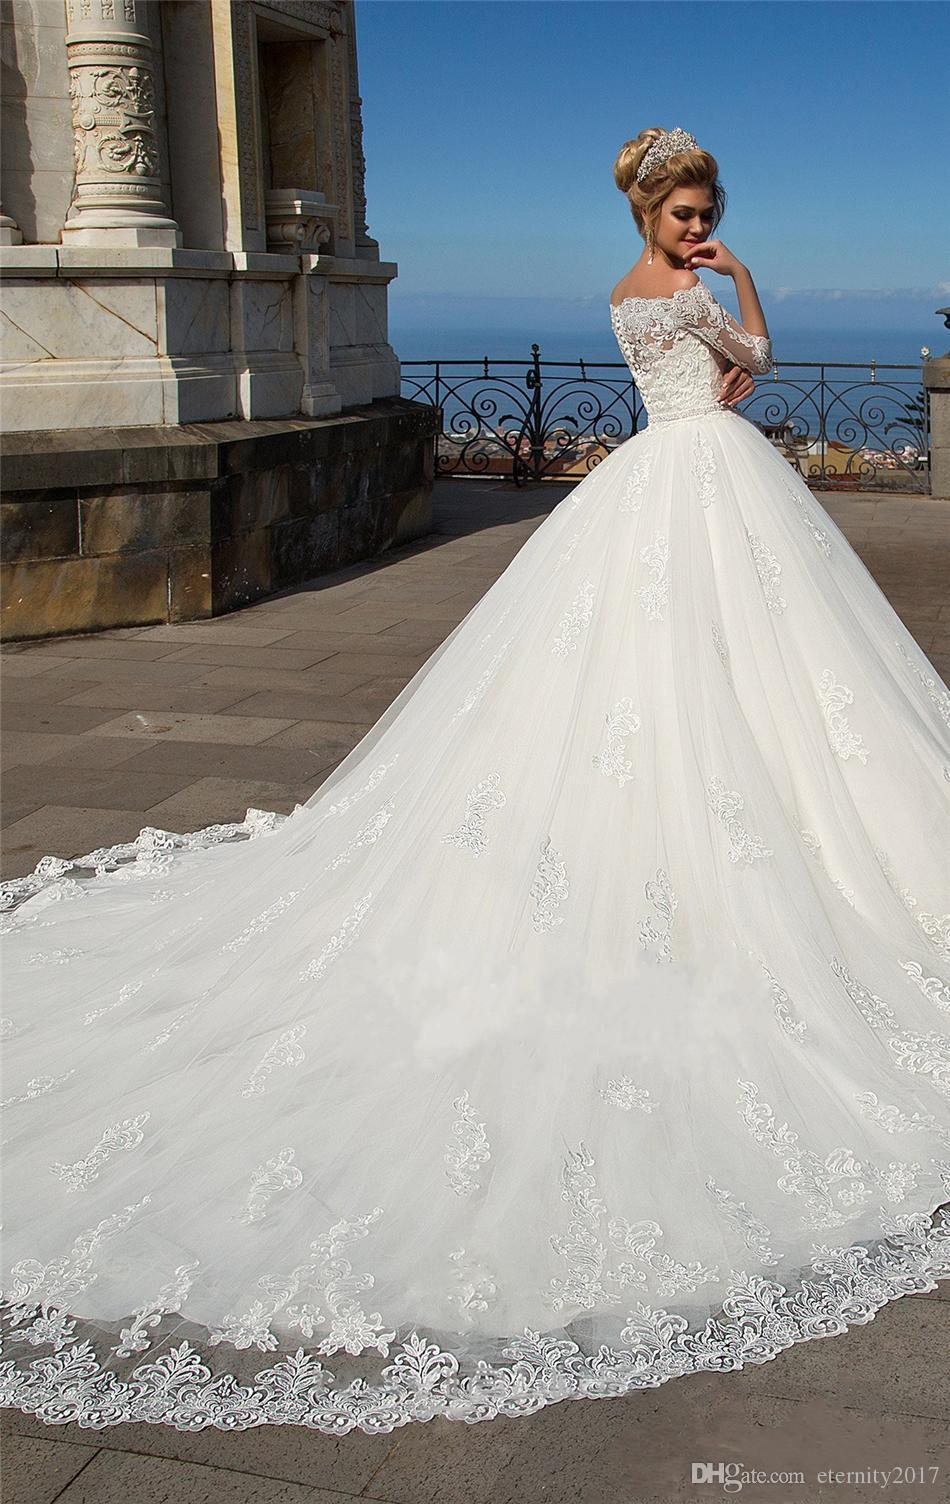 Elegant White Lace Ball Gown Wedding Dresses With Sleeves Off The Shoulder Princess Plus Size Dress Bridal Gowns Custom Made Semi